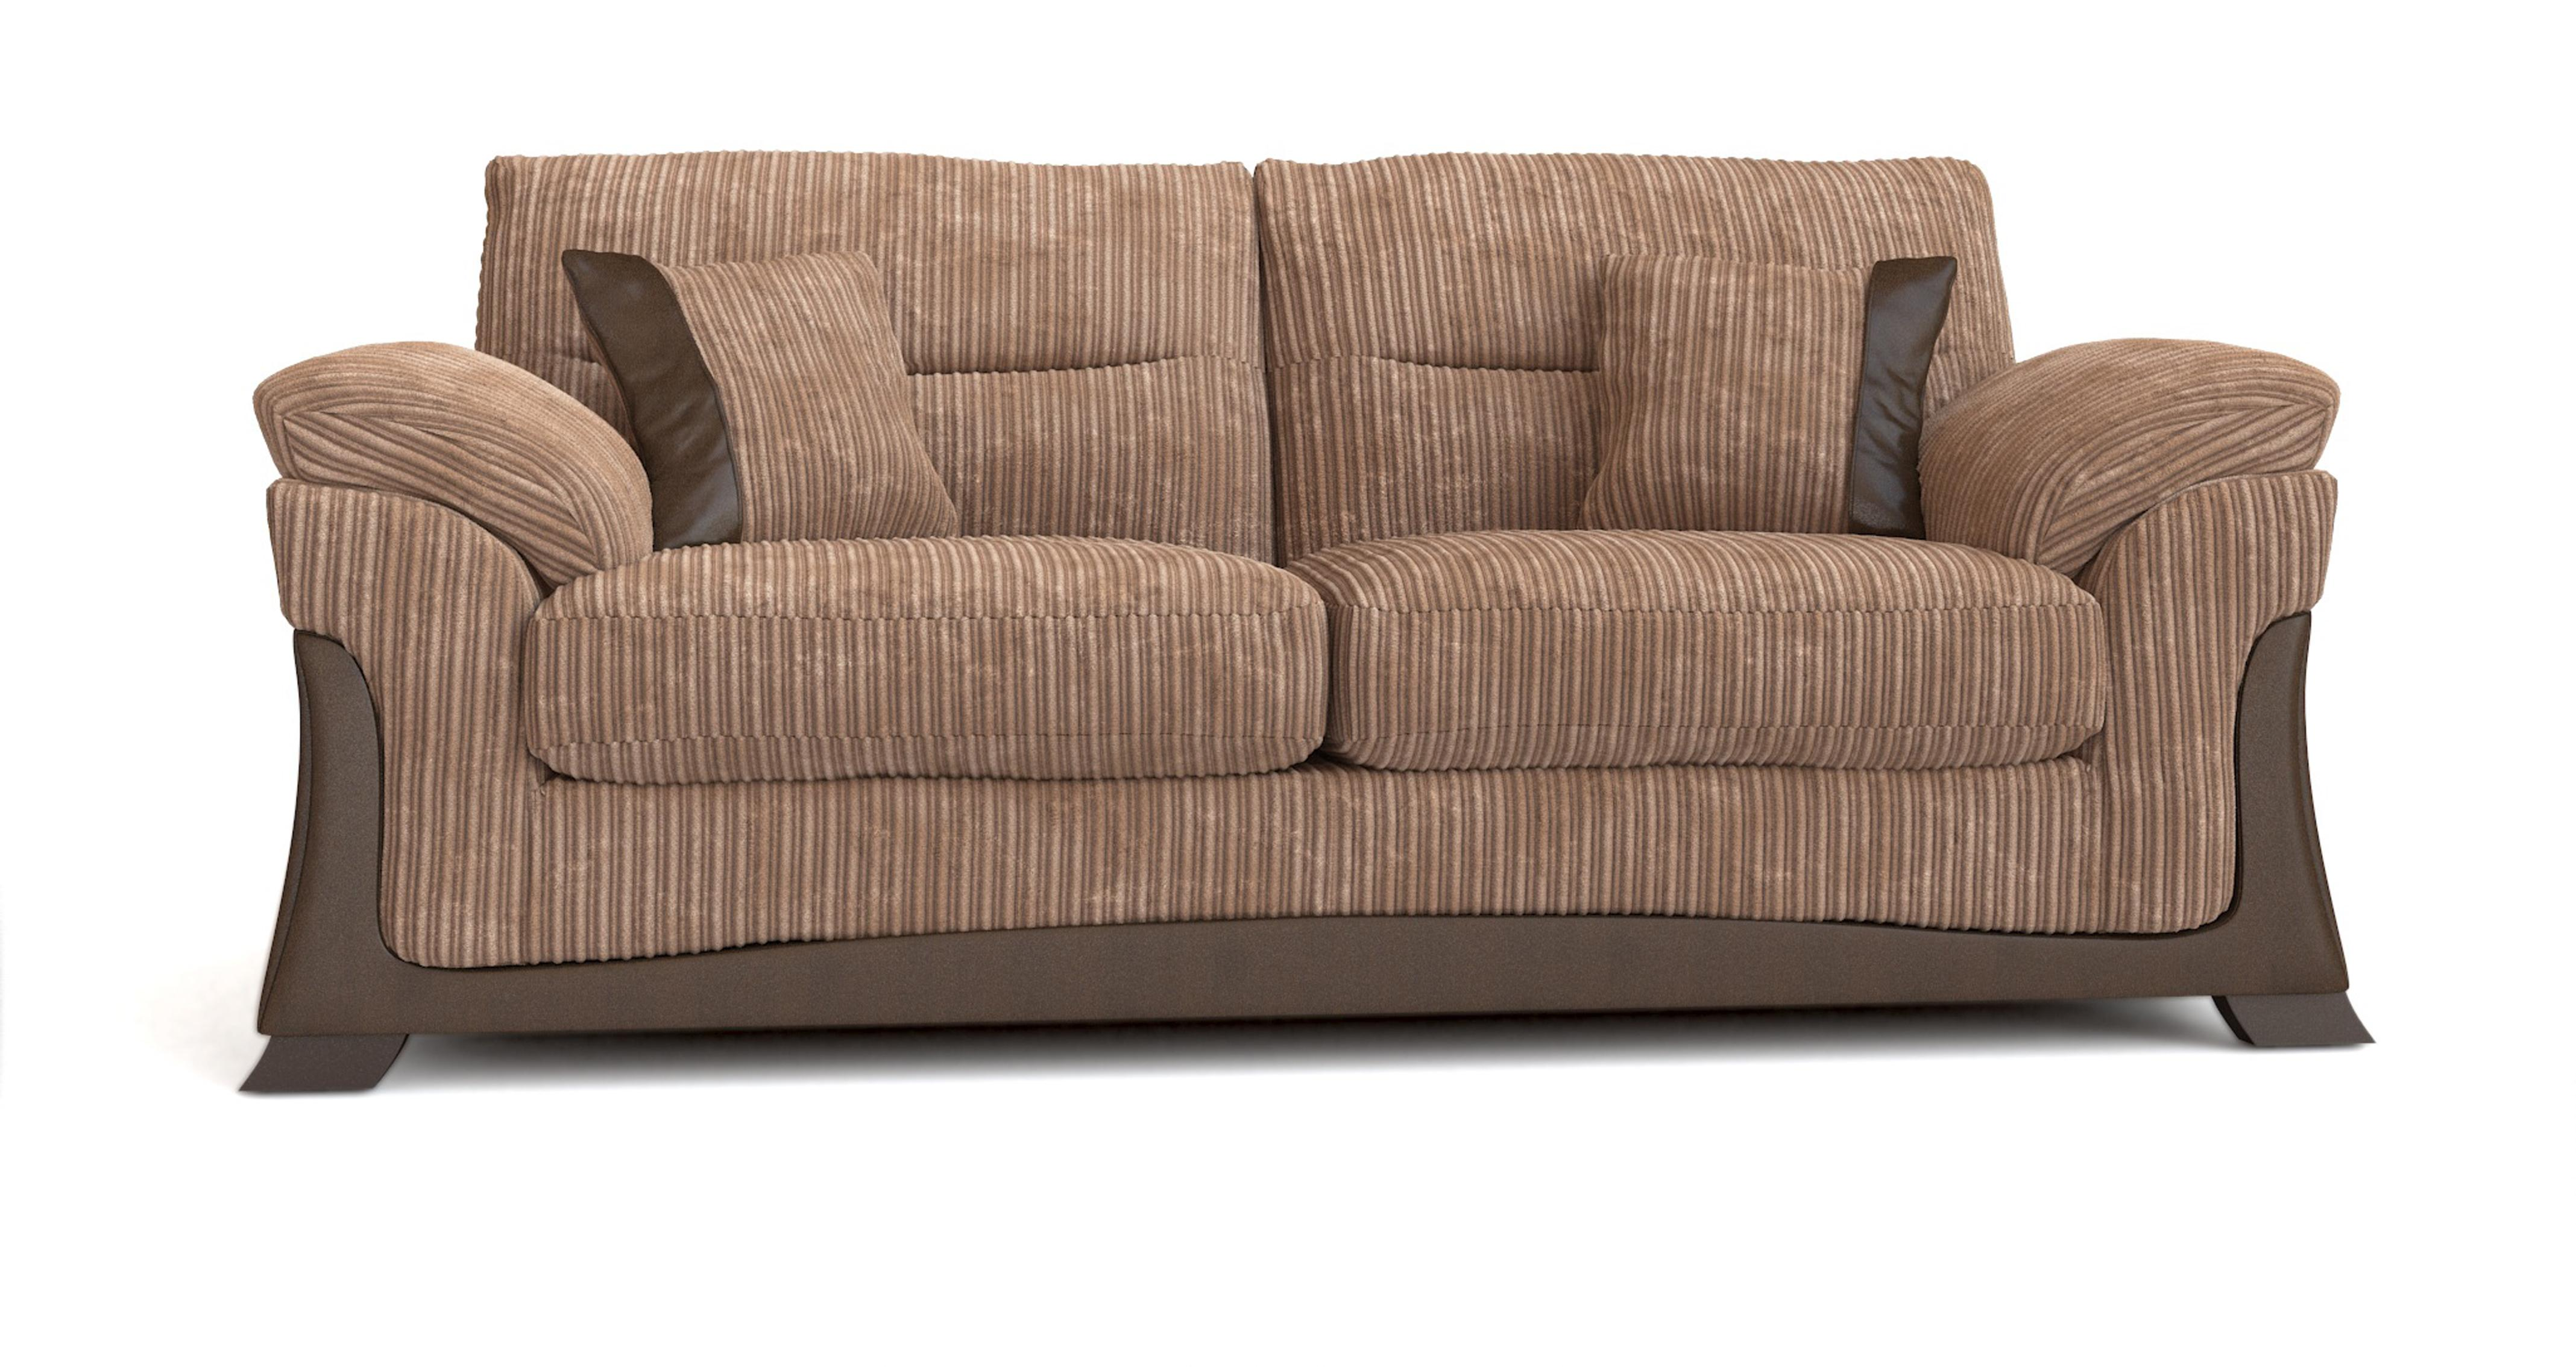 2 seater sofa beds dfs set designs gallery langley 3 bed and chair